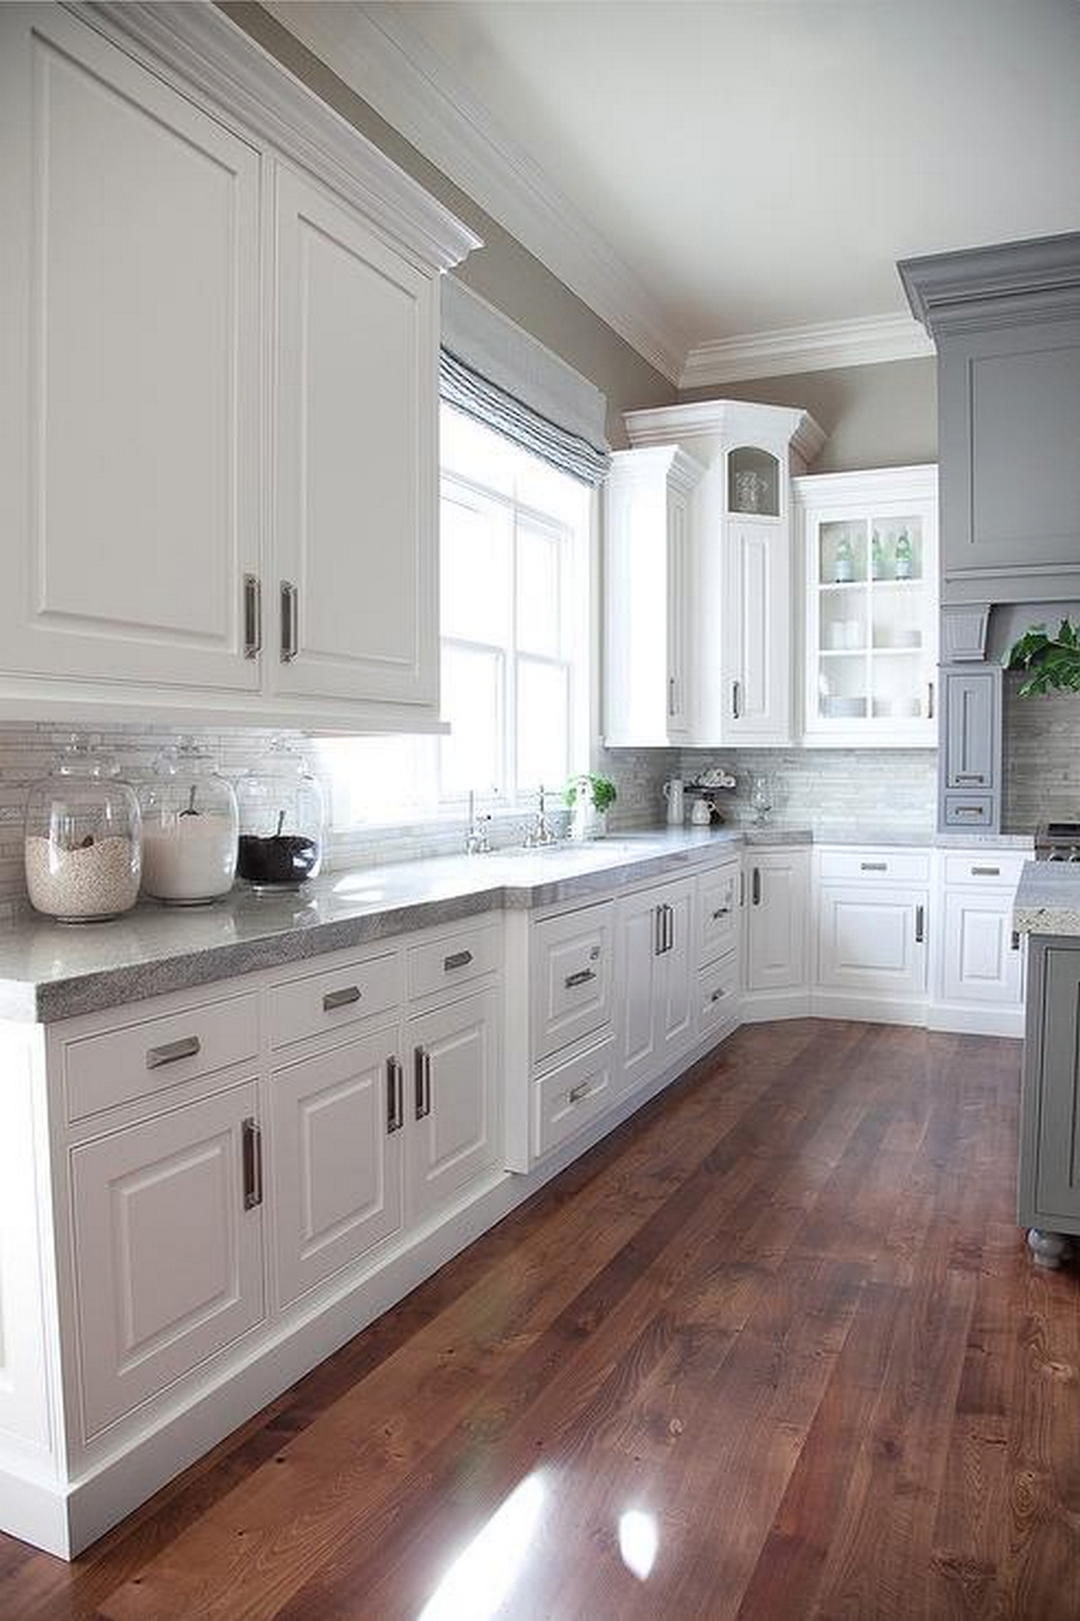 Kitchen Floor Cabinet Cabnets Why White Interior Is Still Great For 2019